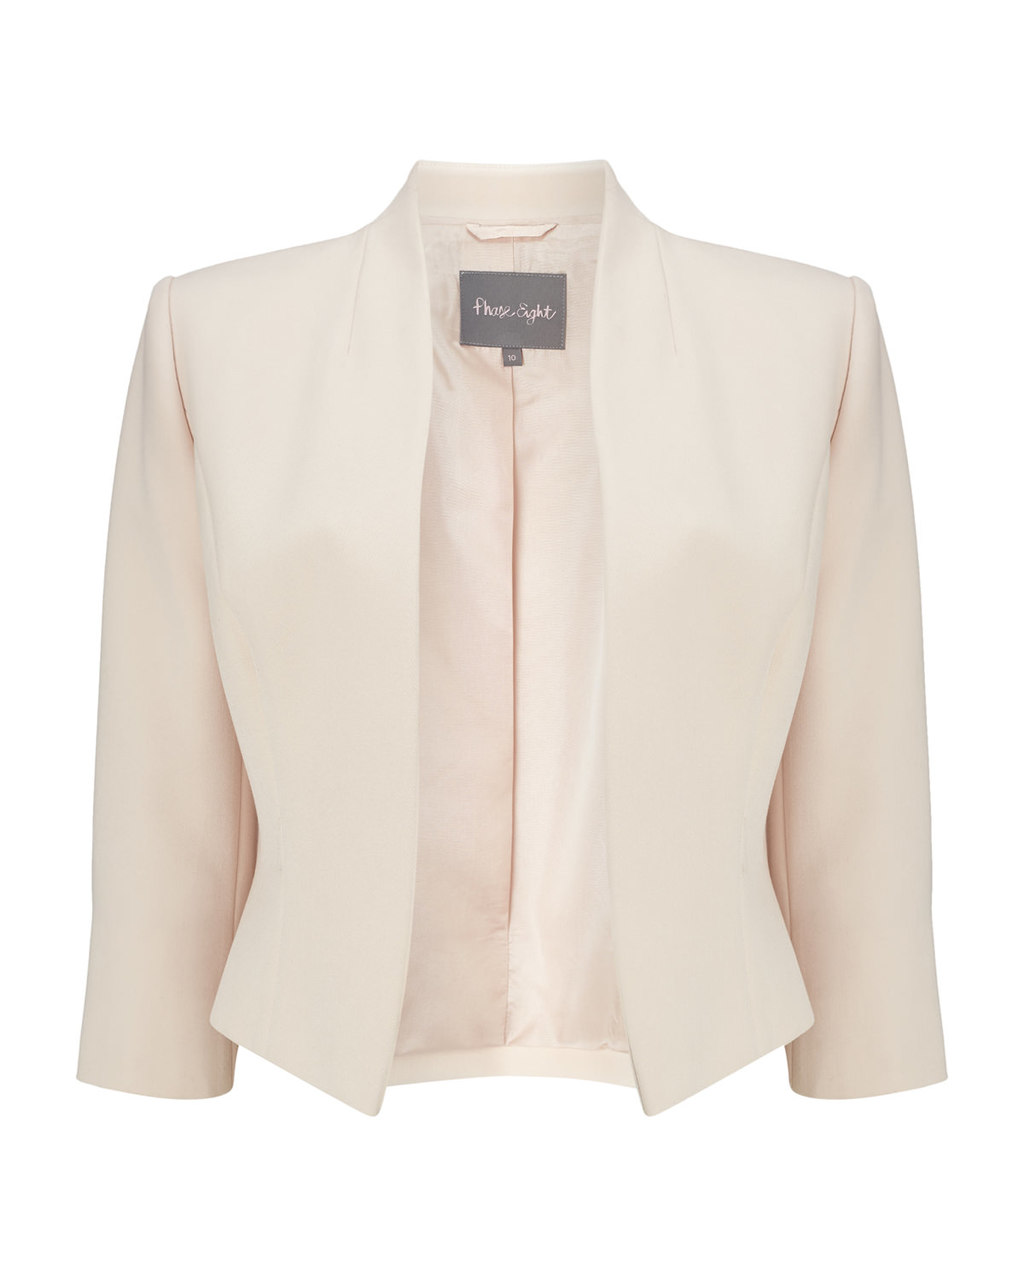 Juno Jacket - pattern: plain; style: single breasted blazer; collar: round collar/collarless; predominant colour: ivory/cream; length: standard; fit: tailored/fitted; fibres: polyester/polyamide - stretch; occasions: occasion; sleeve length: 3/4 length; sleeve style: standard; collar break: low/open; pattern type: fabric; texture group: woven light midweight; season: a/w 2015; wardrobe: event